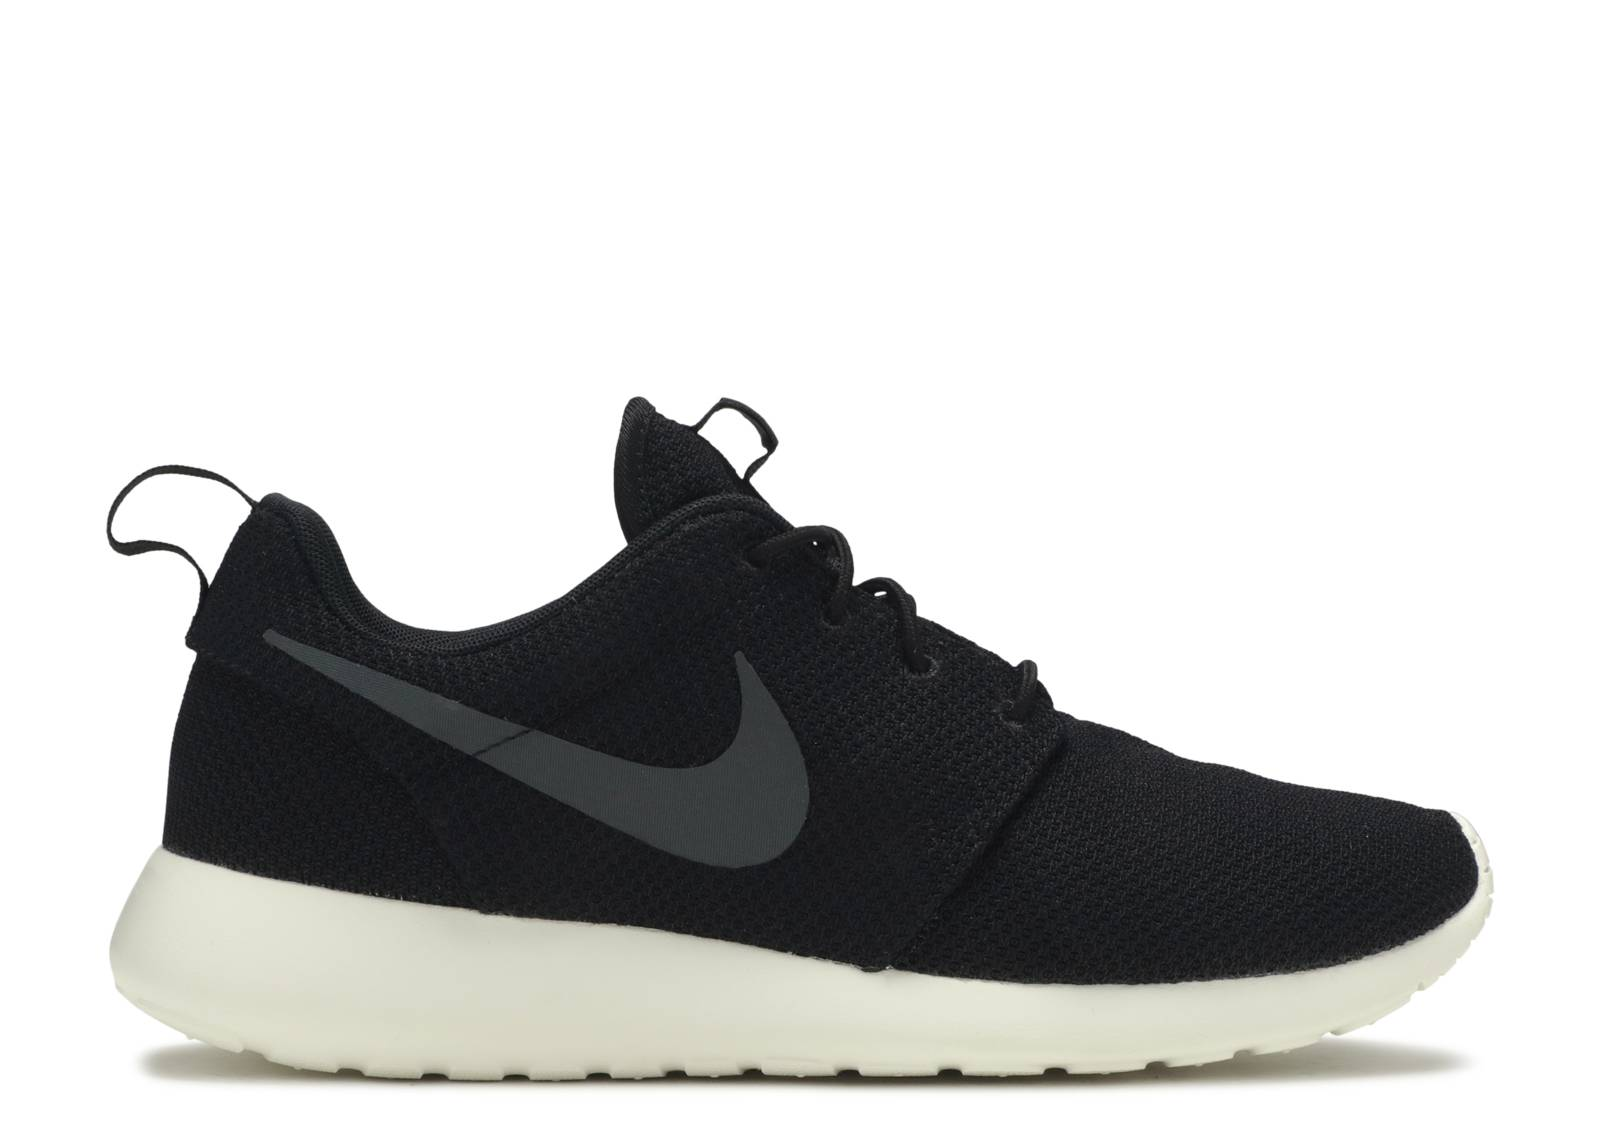 wholesale dealer 5e08b 28e86 Rosherun - Nike - 511881 010 - black anthracite-sail   Flight Club